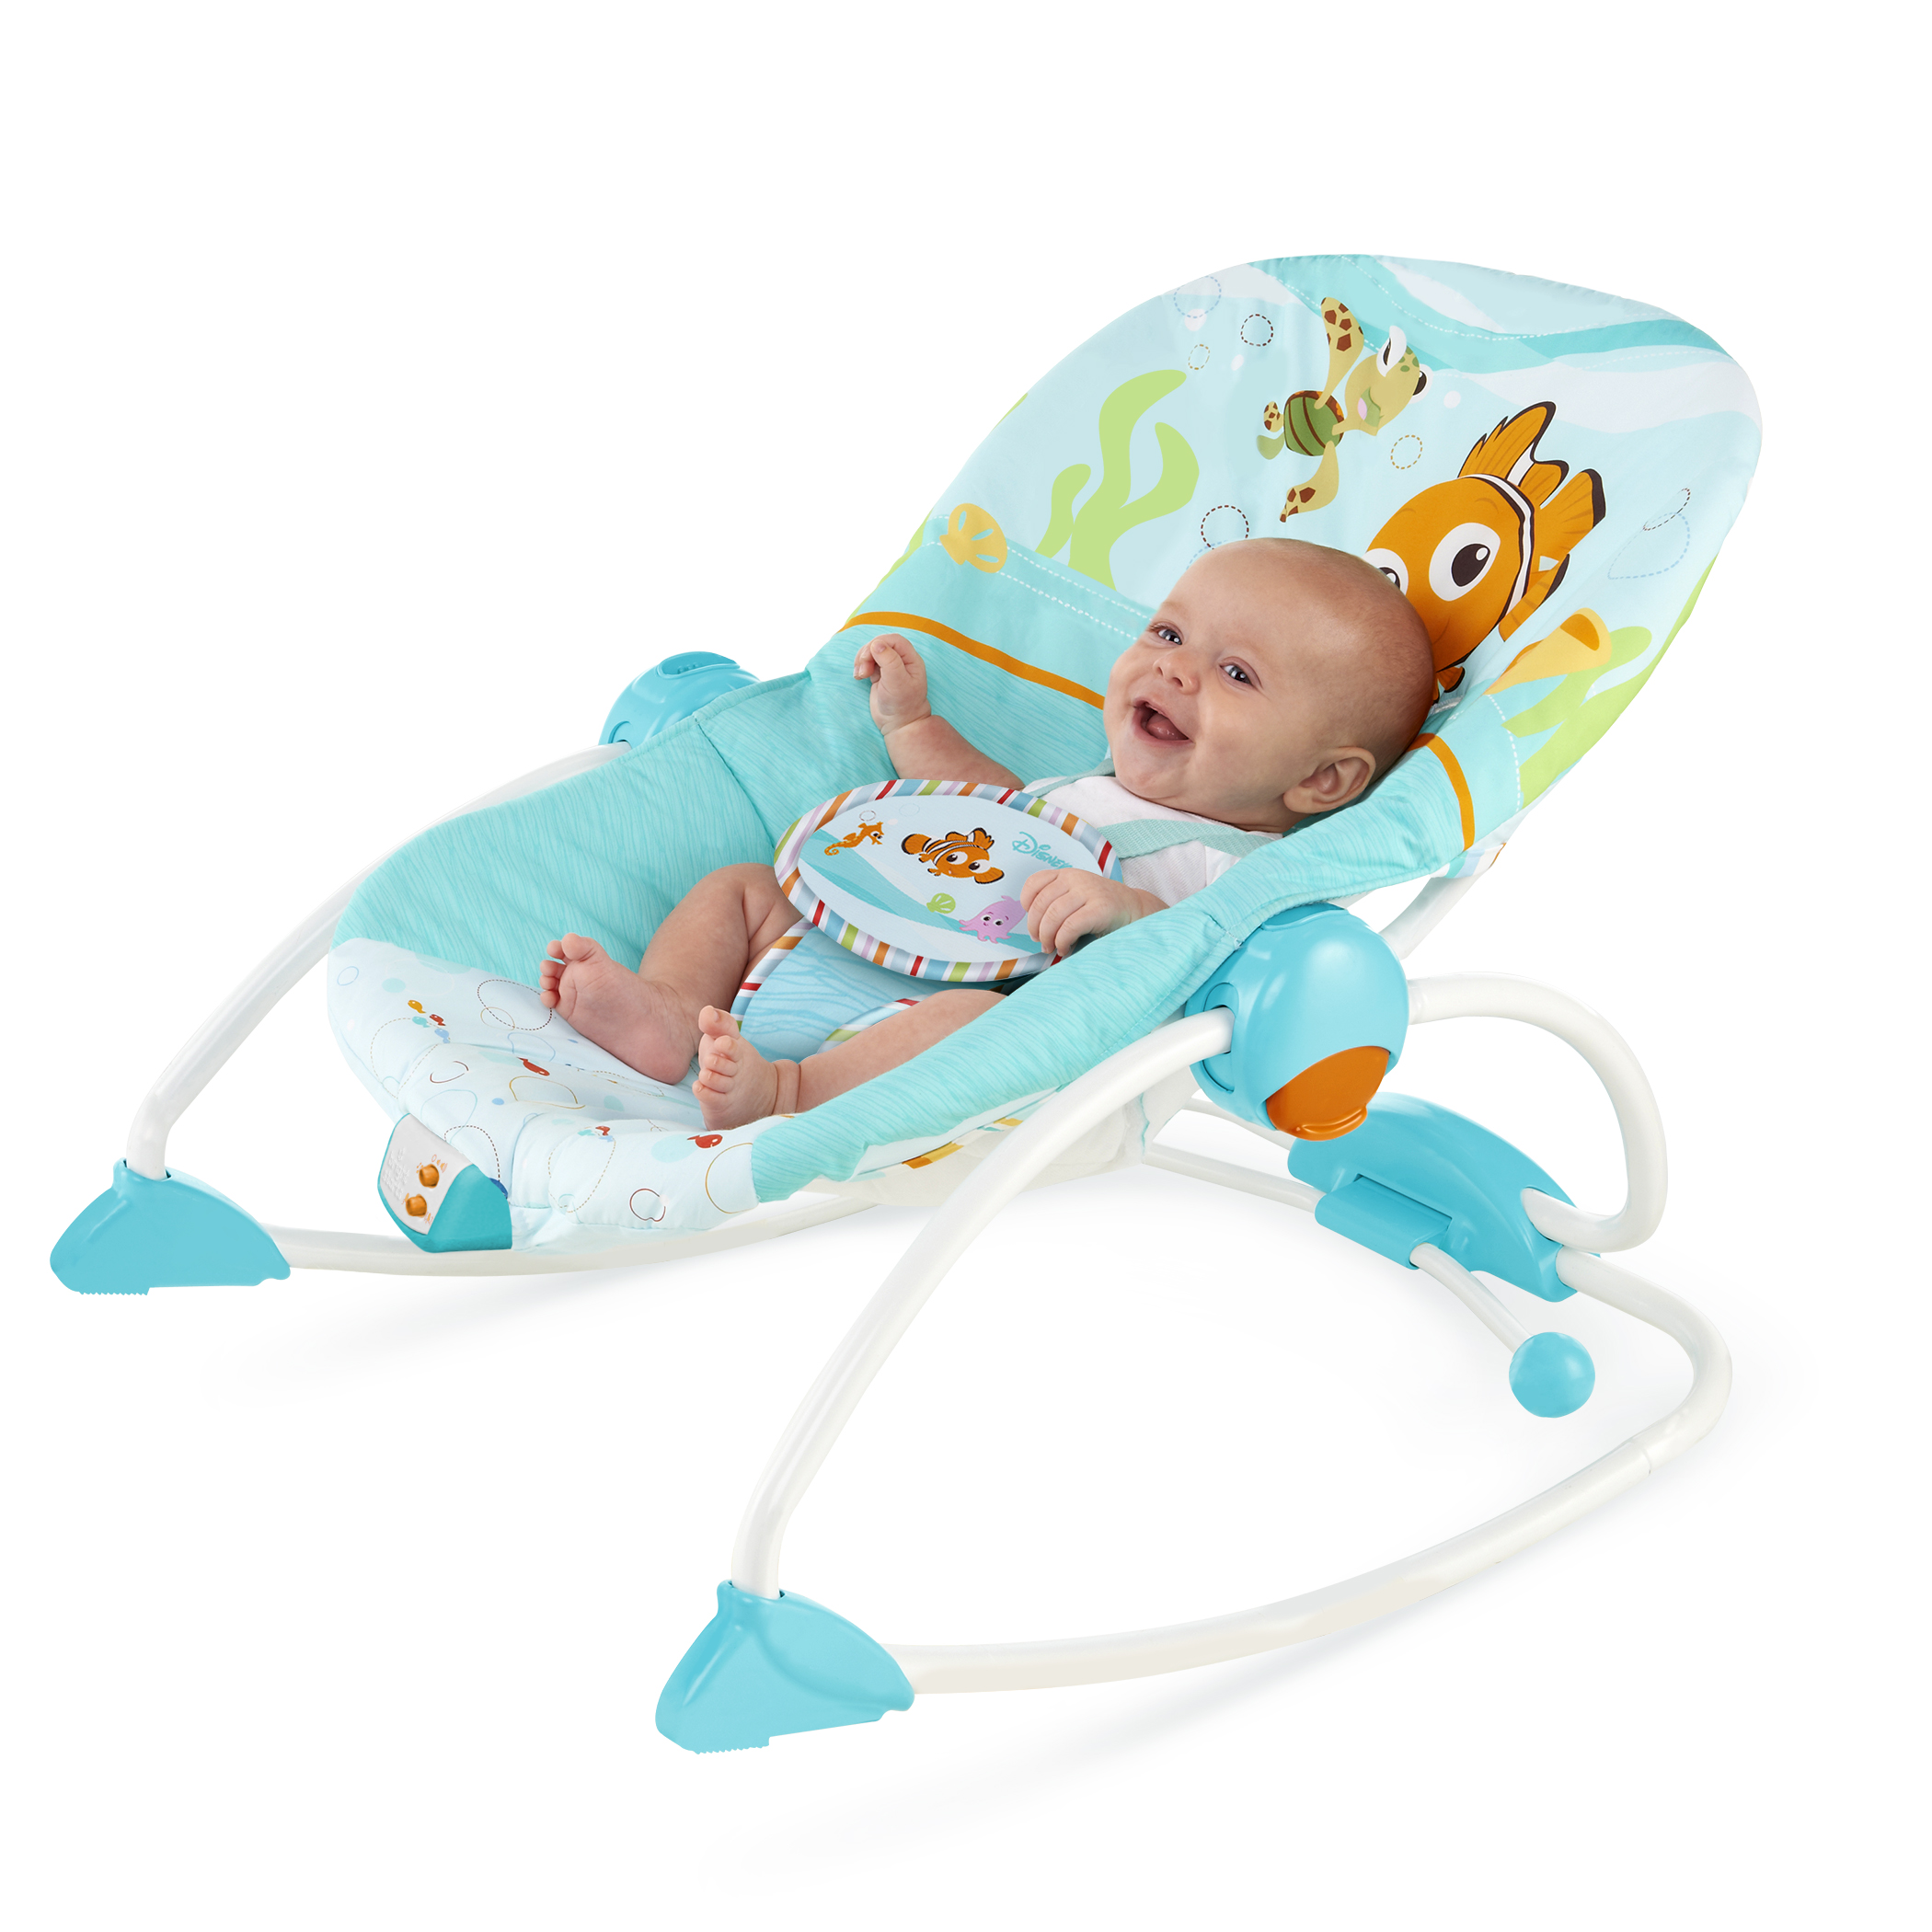 0da048fd253 Disney Finding Nemo Fins & Friends Infant to Toddler Rocker - Yuki ...